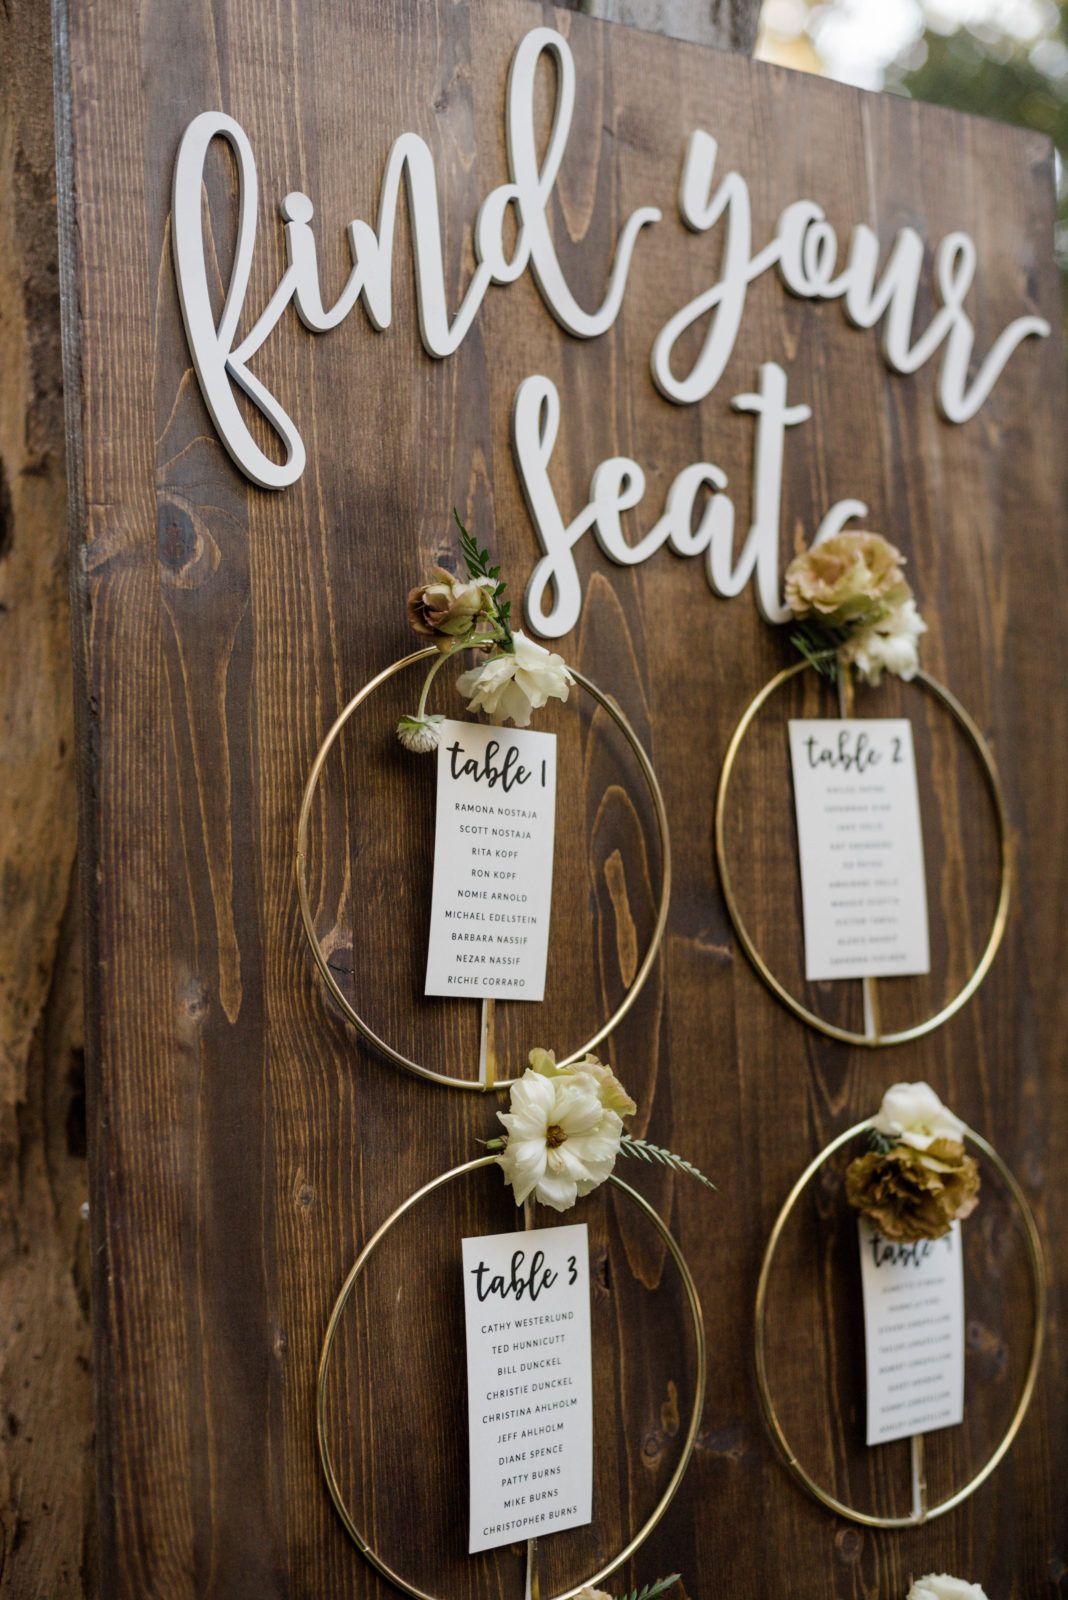 A Chic Rustic Wedding at Calamigos Ranch - Feathered Arrow